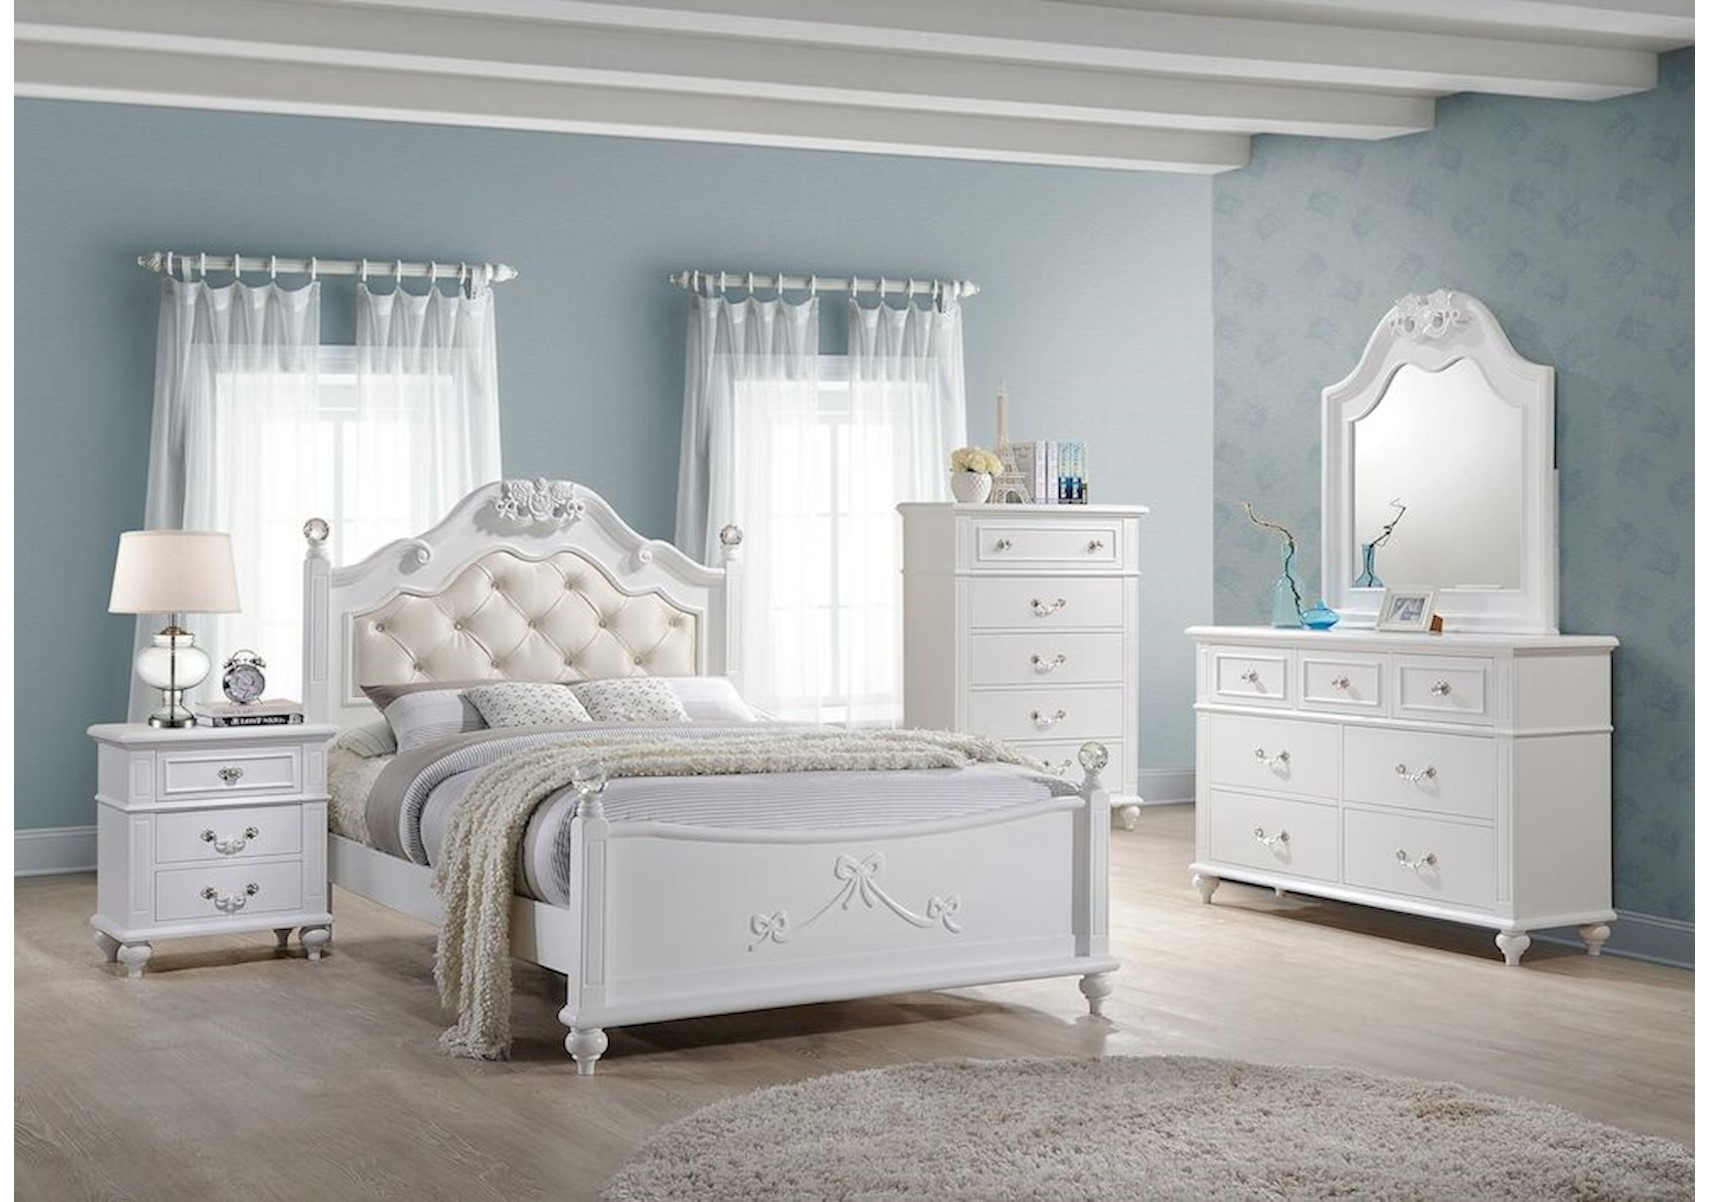 Lacks | Alana 4-Pc Kids Full Bedroom Set